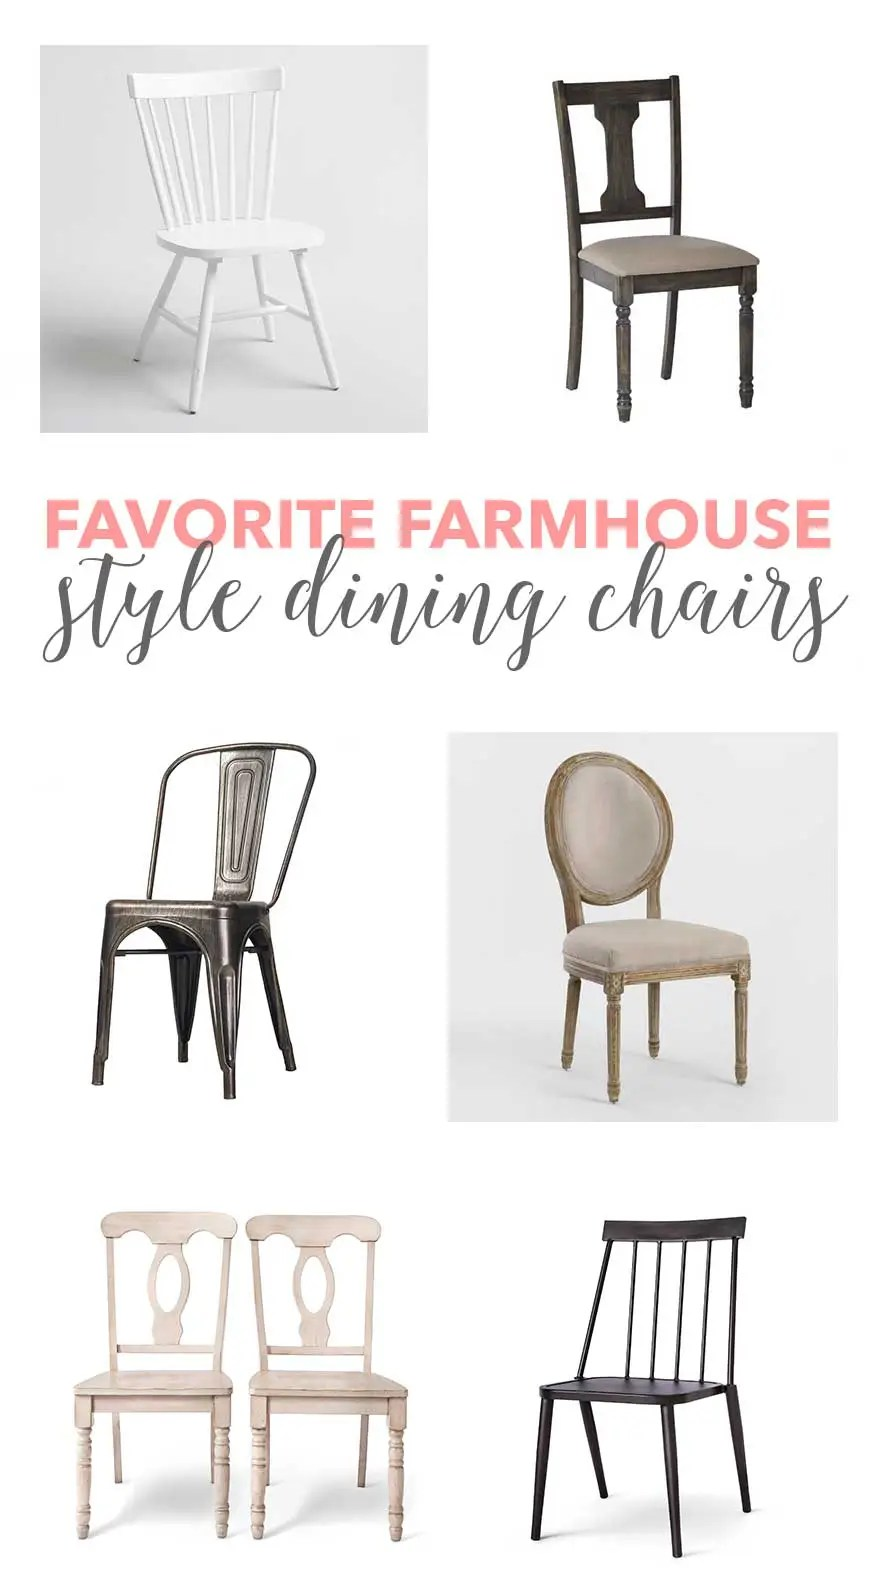 A fantastic resource for some beautiful farmhouse dining chairs